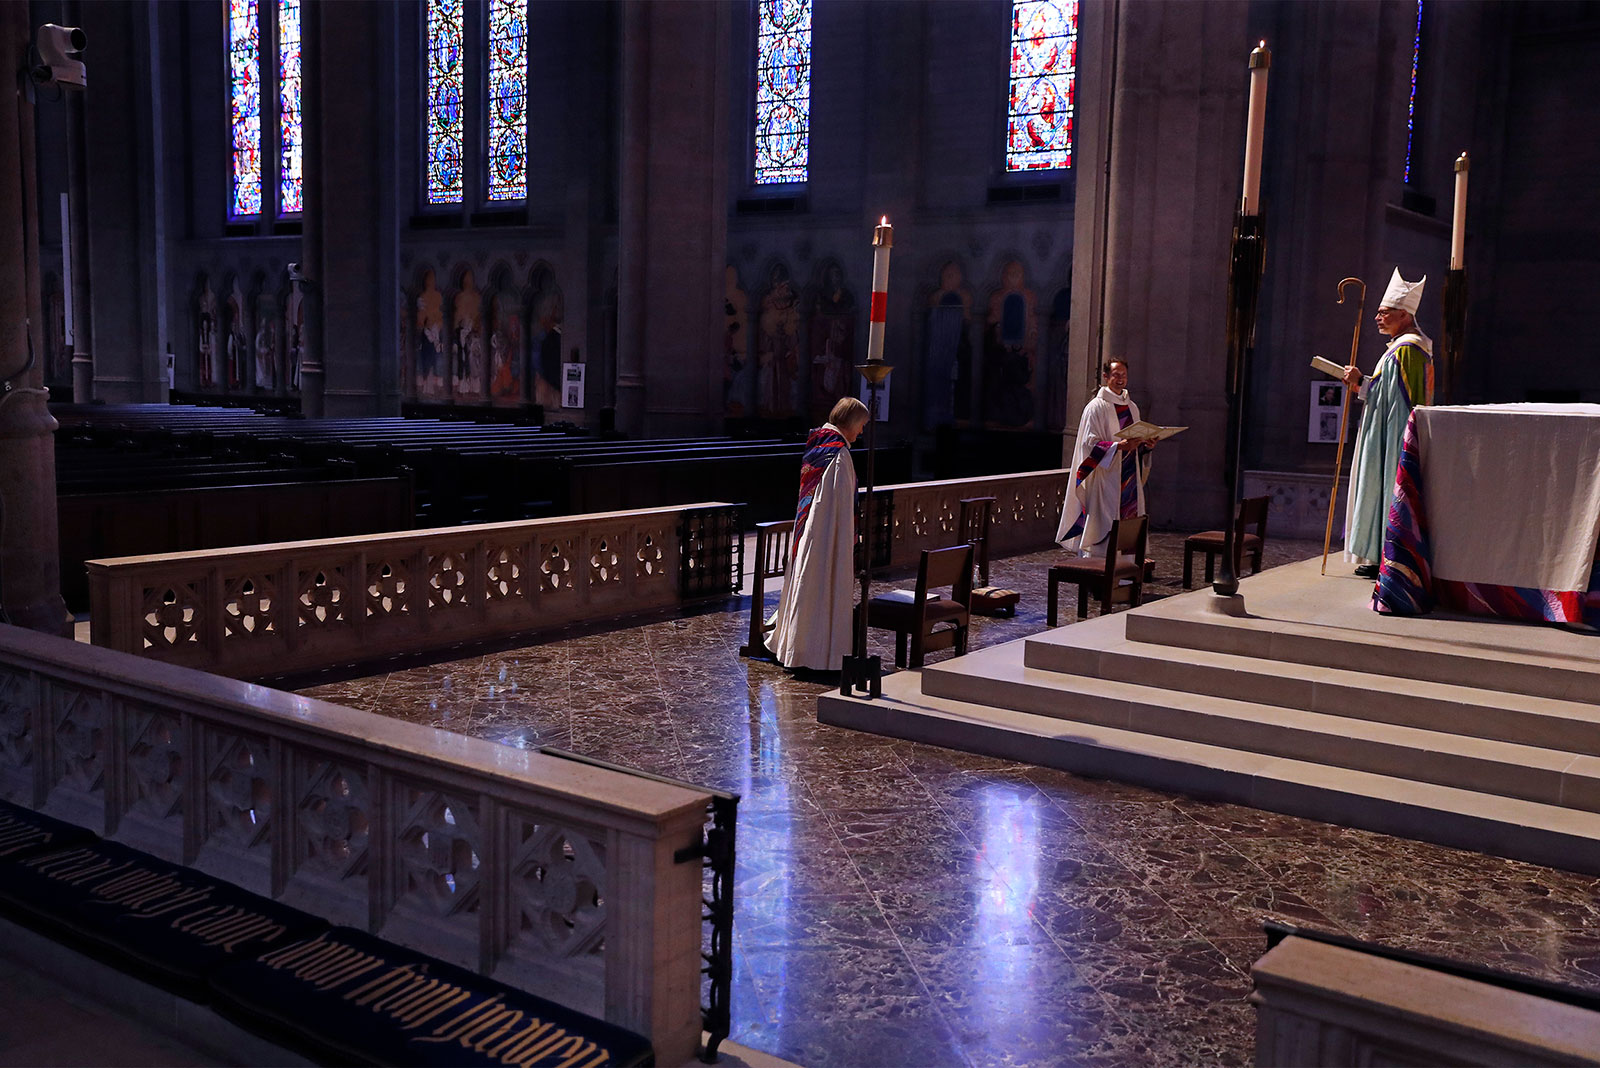 From left, Vice Dean Ellen Clark-King, Dean Malcolm Young and Bishop Marc Andrus conduct a virtual Easter Sunday service at an empty Grace Cathedral in San Francisco, California.